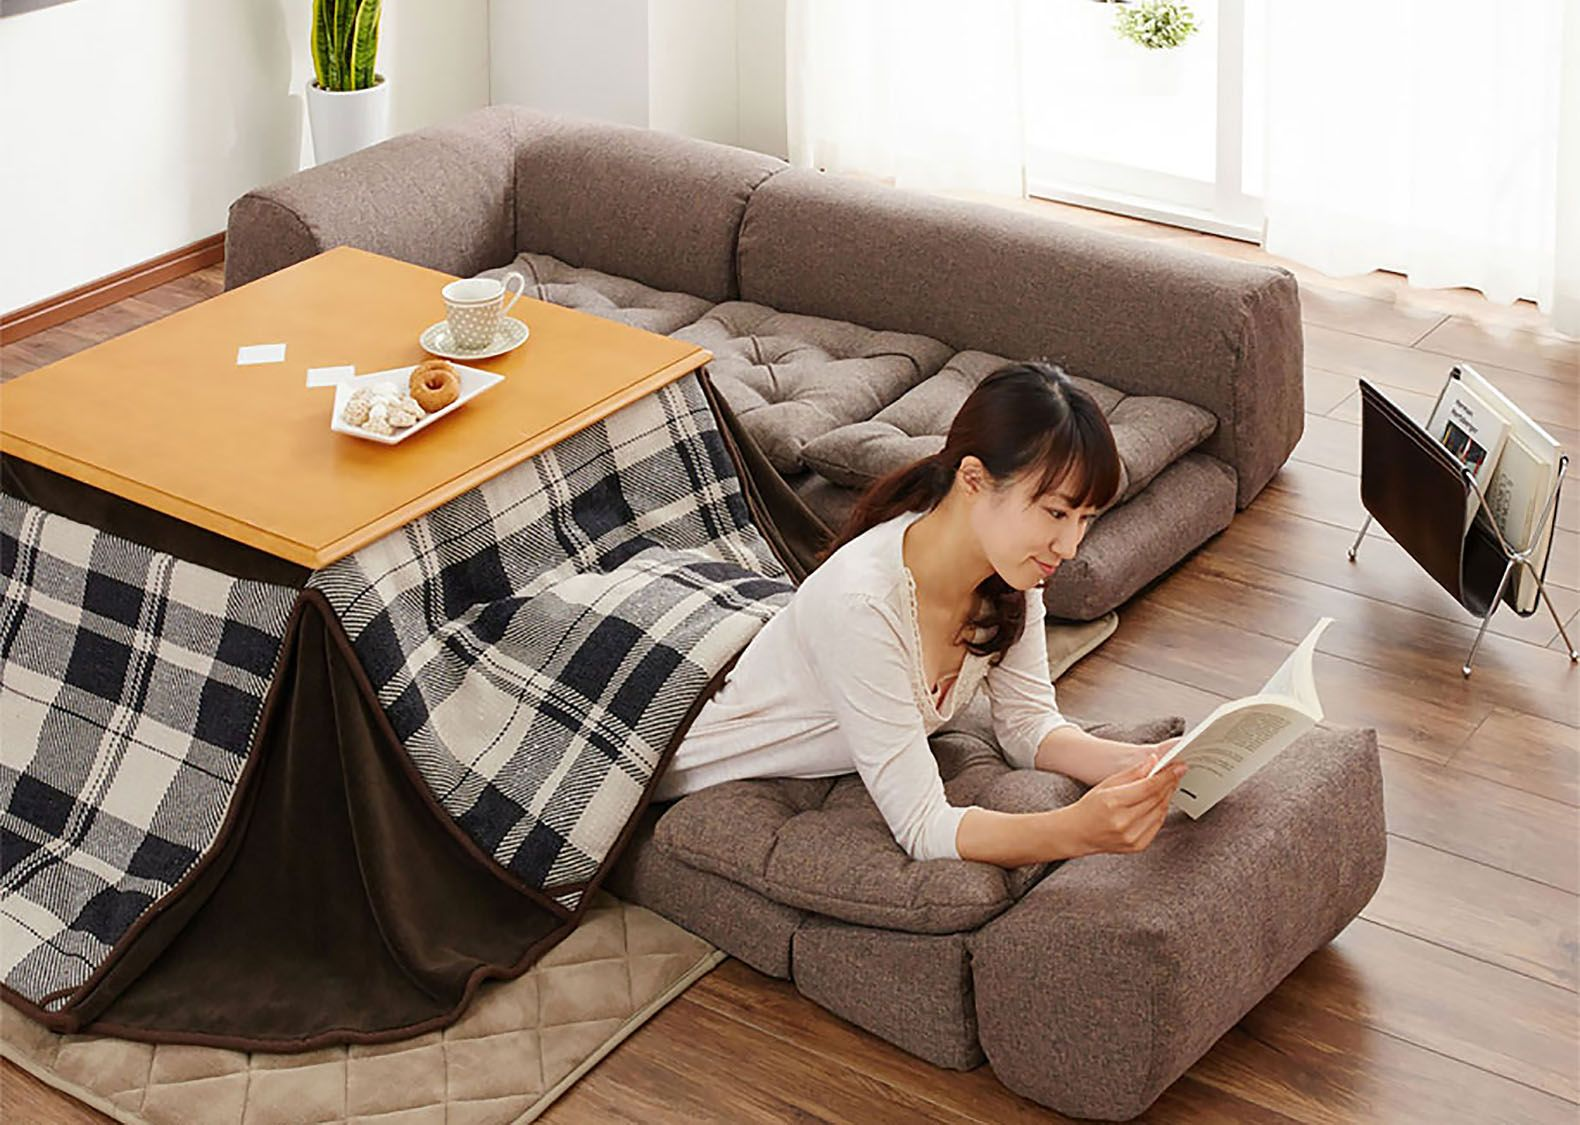 Slay Winter With A Heated Kotatsu Table Bed From Japan Japanese